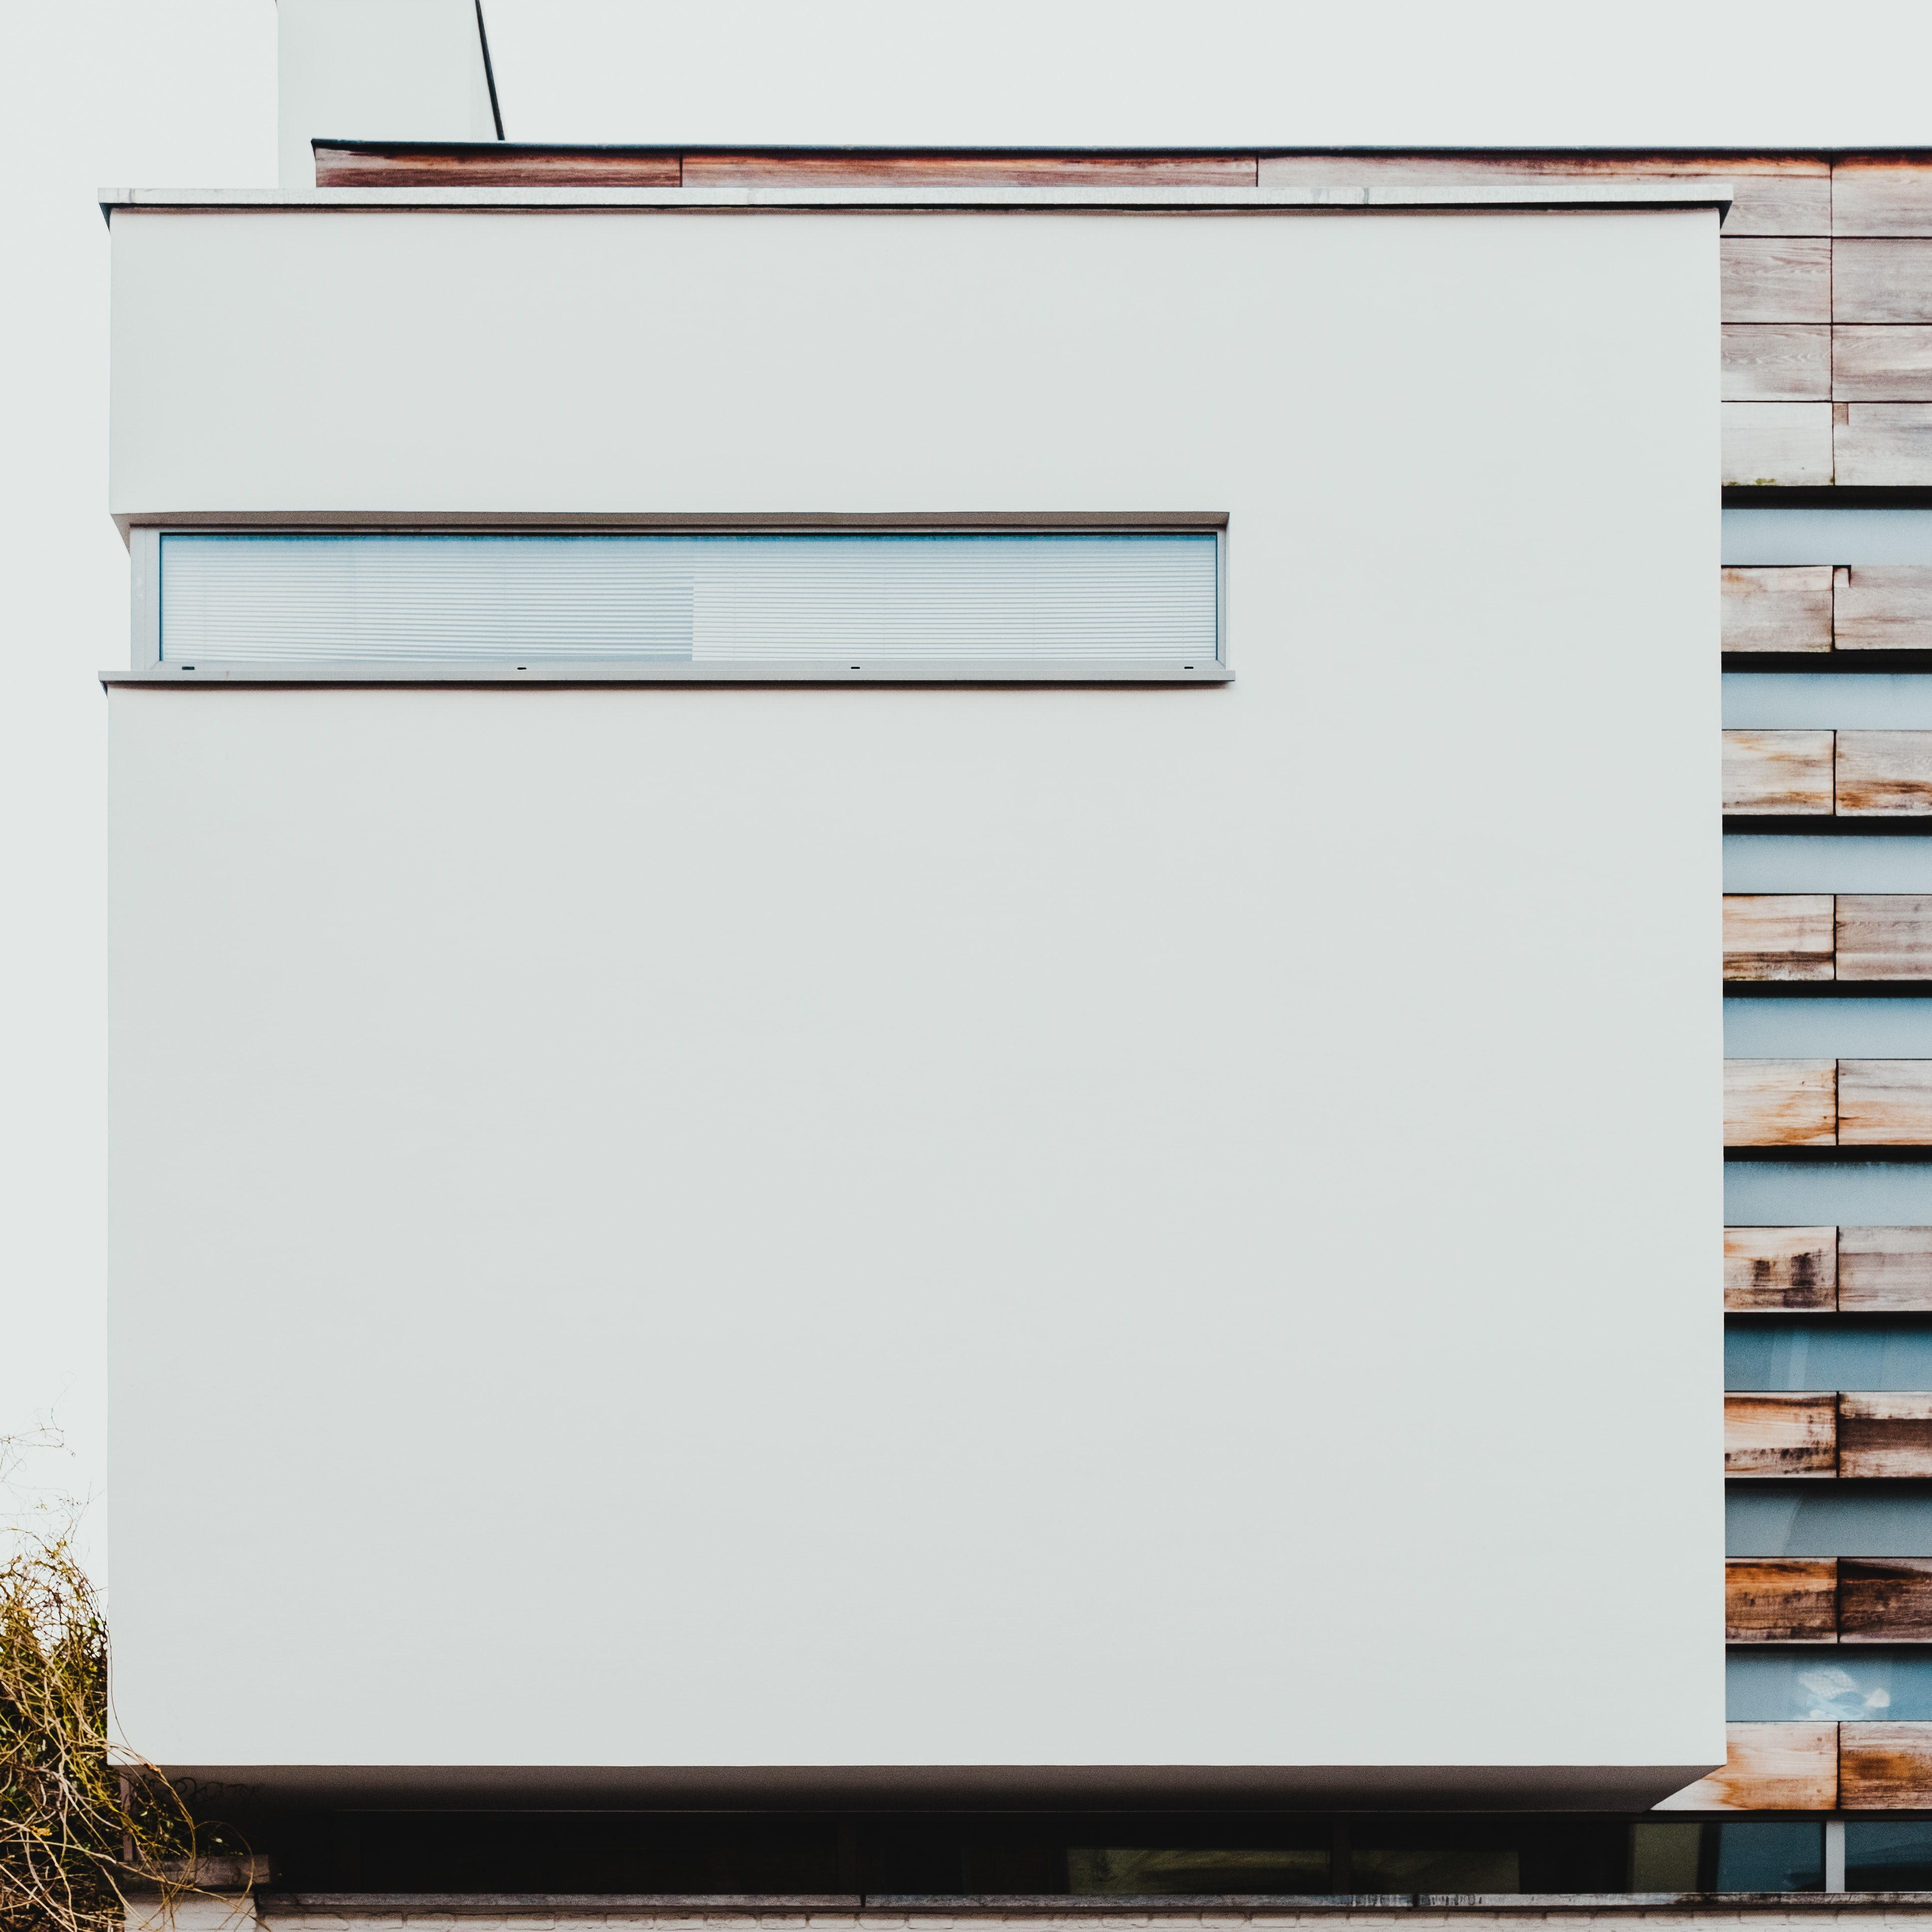 white and brown concrete building during daytime